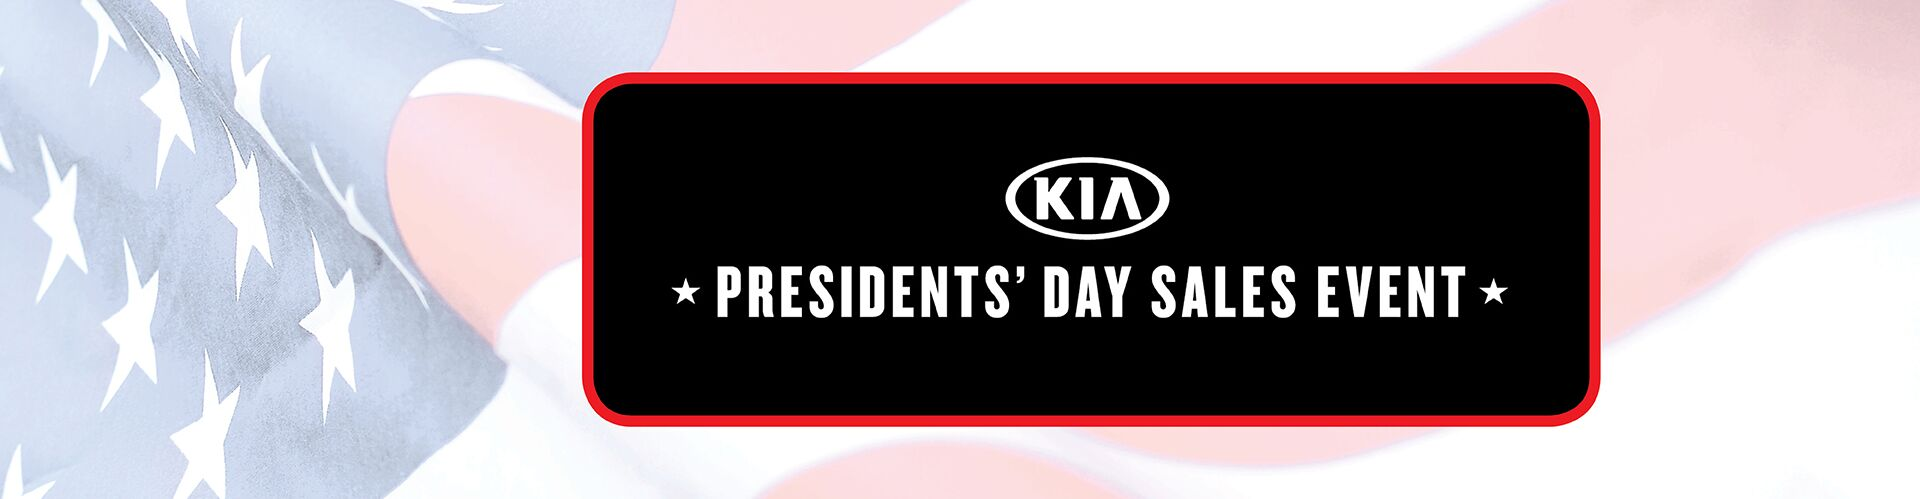 KIA - Light Up The Holidays Sales Event!